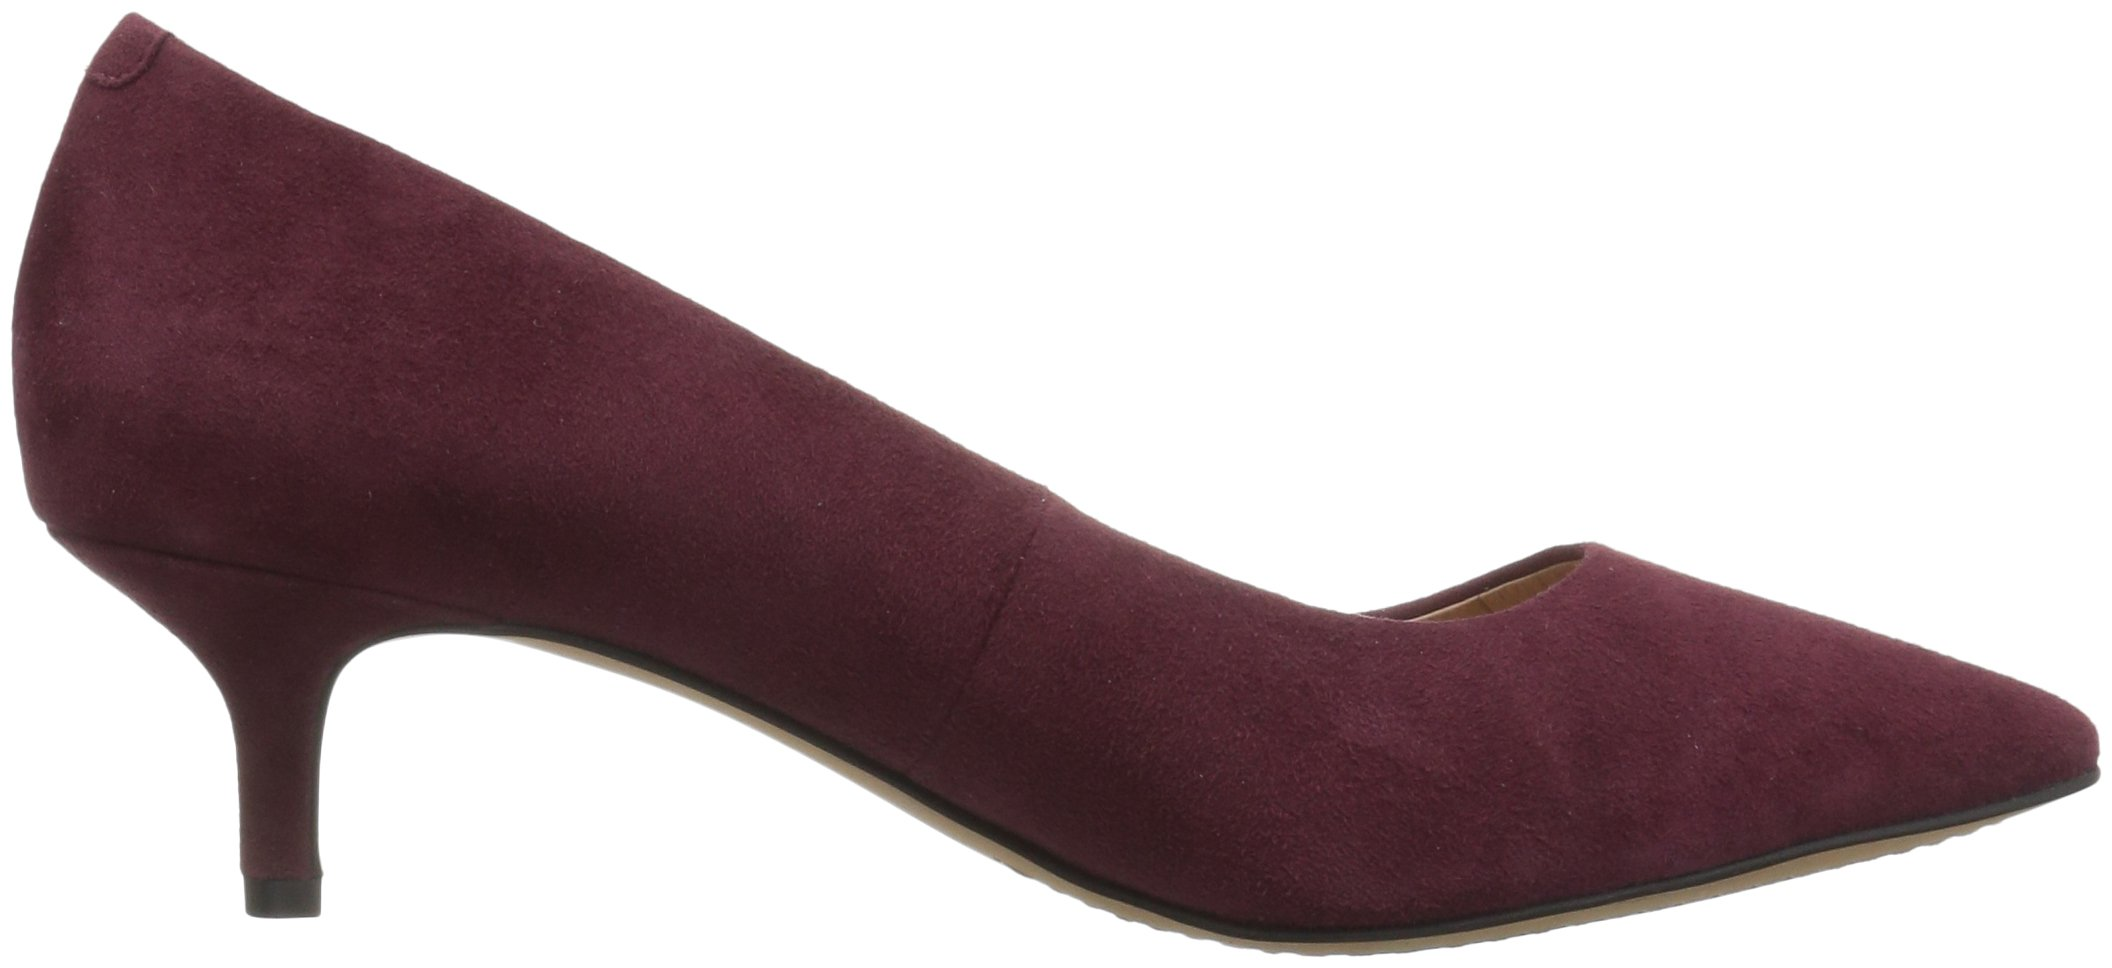 206 Collective Women's Queen Anne Kitten Heel Dress Pump, Burgundy, 8.5 B US by 206 Collective (Image #7)